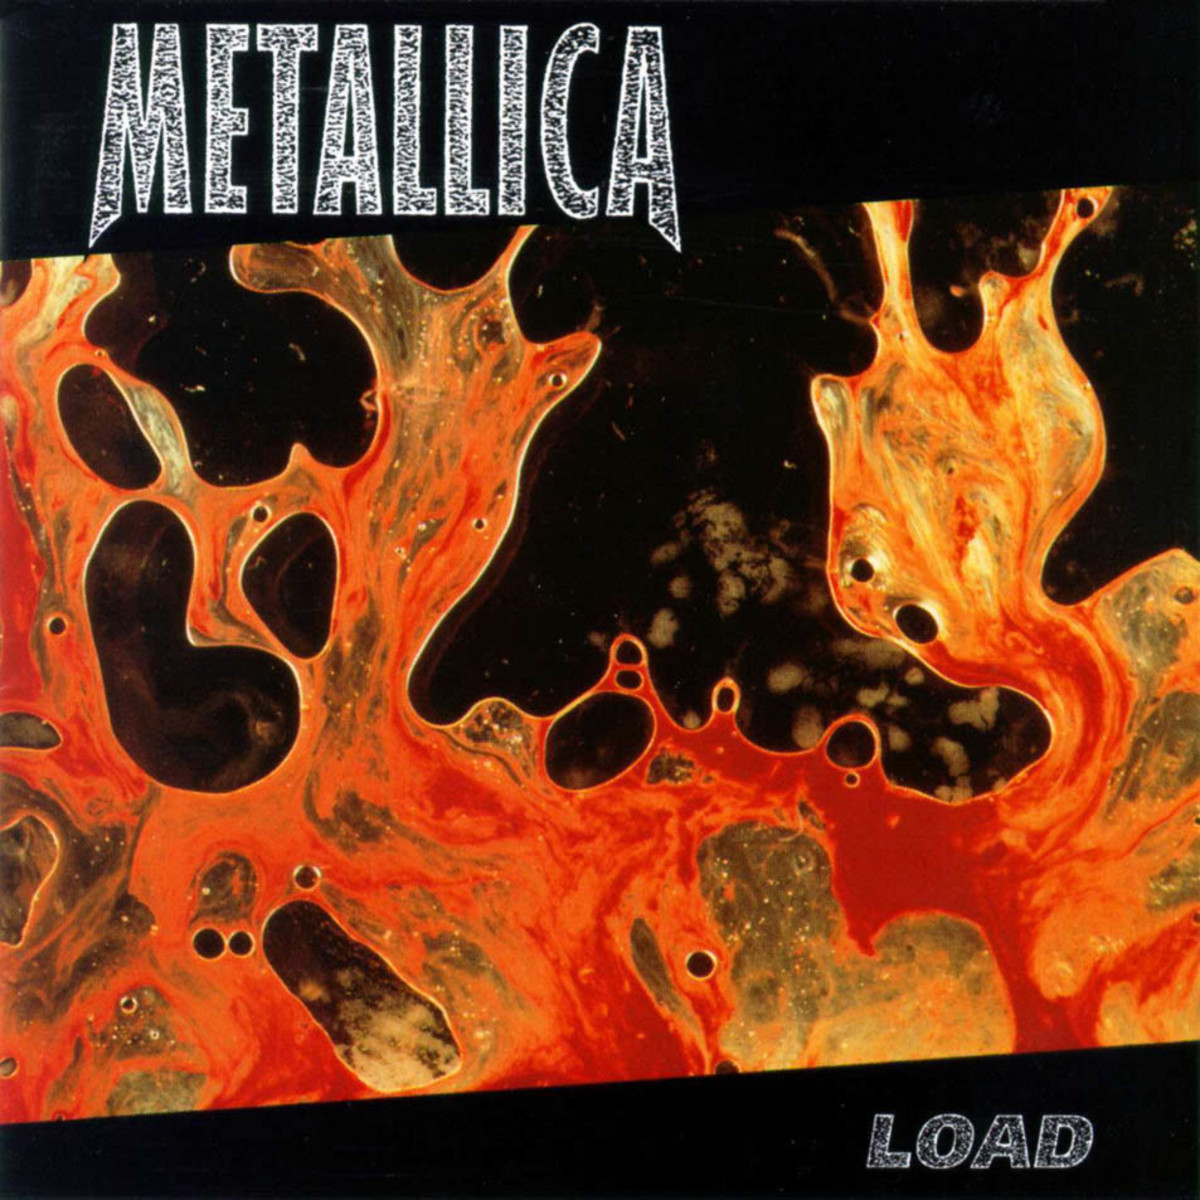 A Review of the album Load by Metallica:how it sounds 20 years later